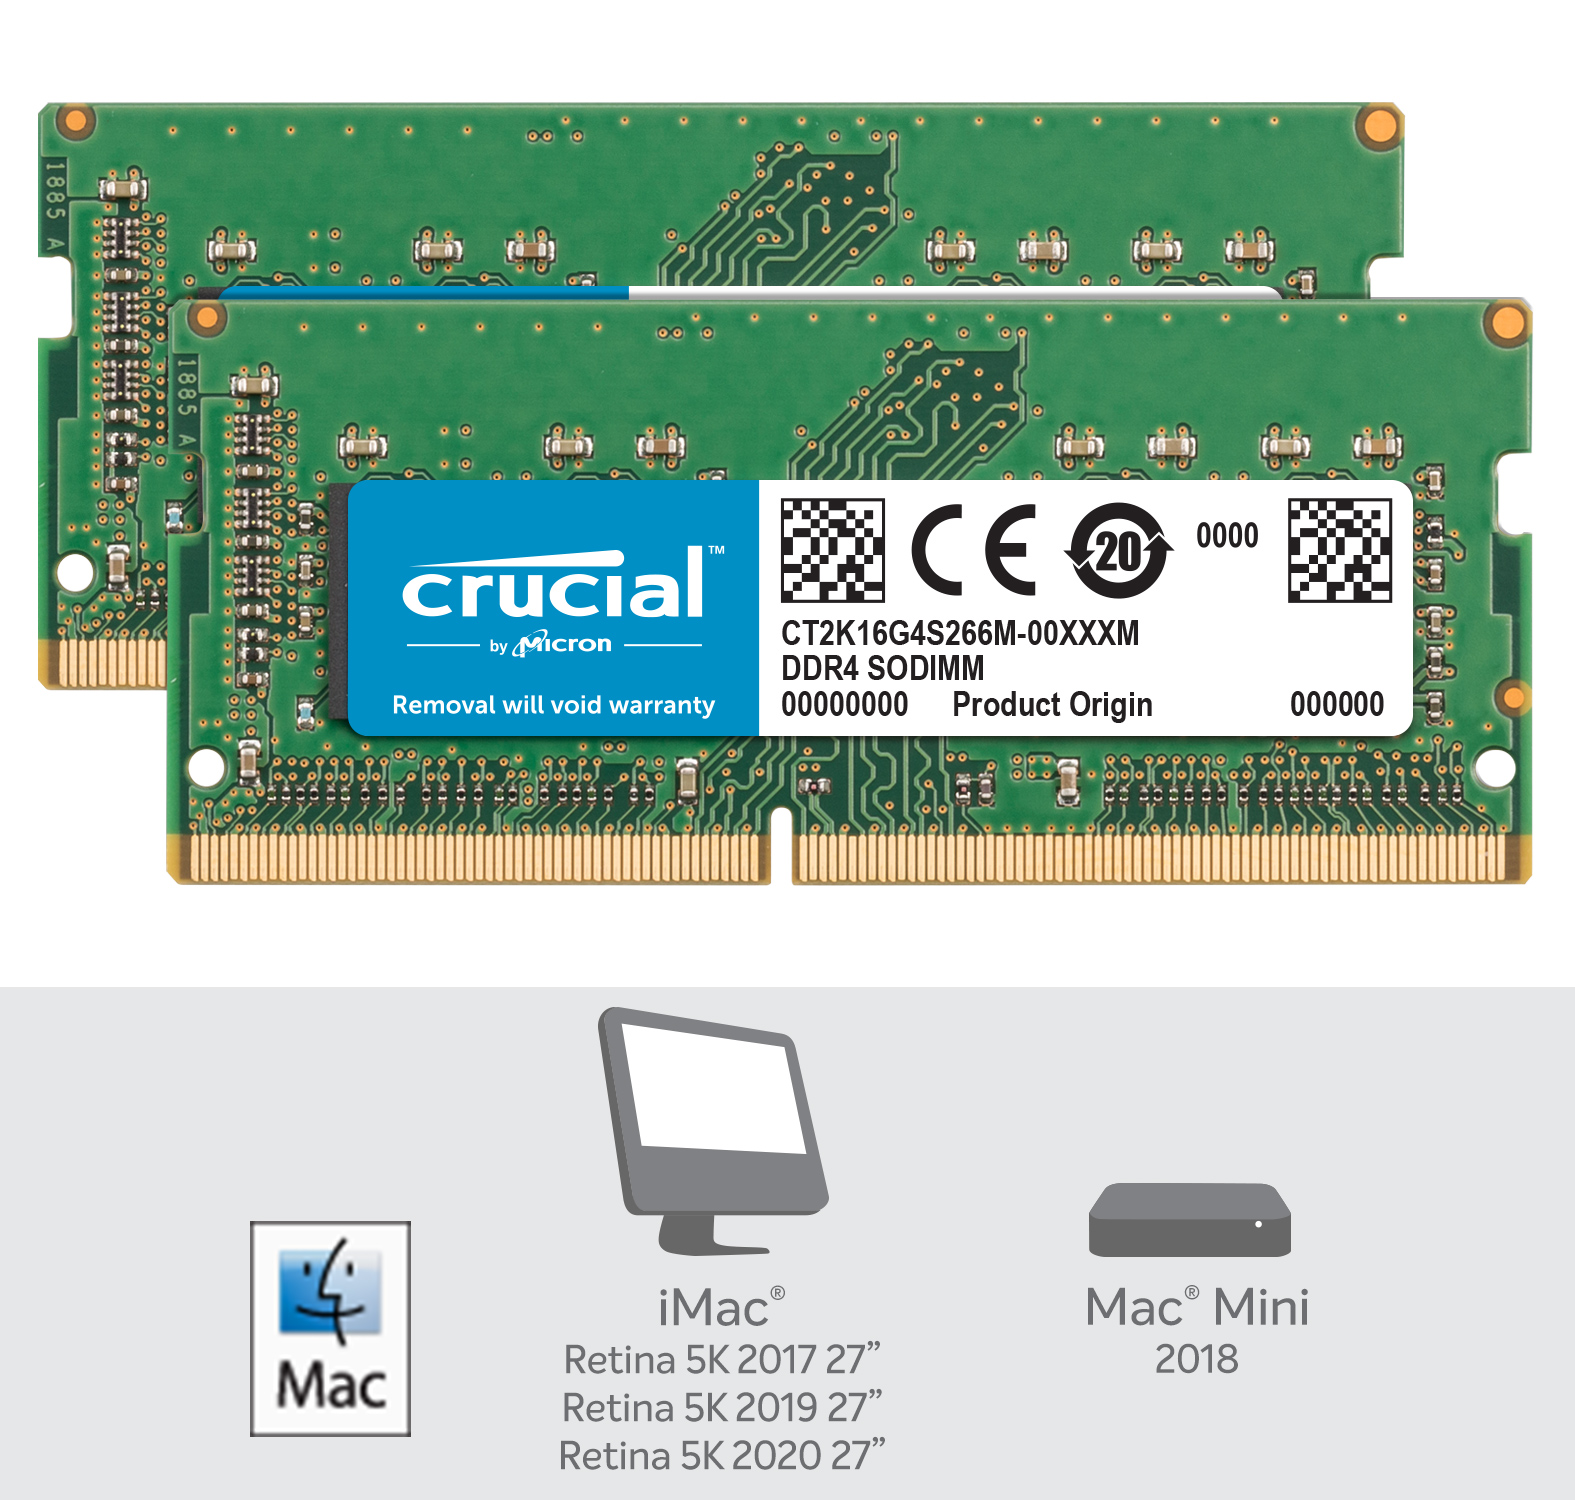 Crucial 32GB Kit (2 x 16GB) DDR4-2666 SODIMM Memory for Mac- view 2